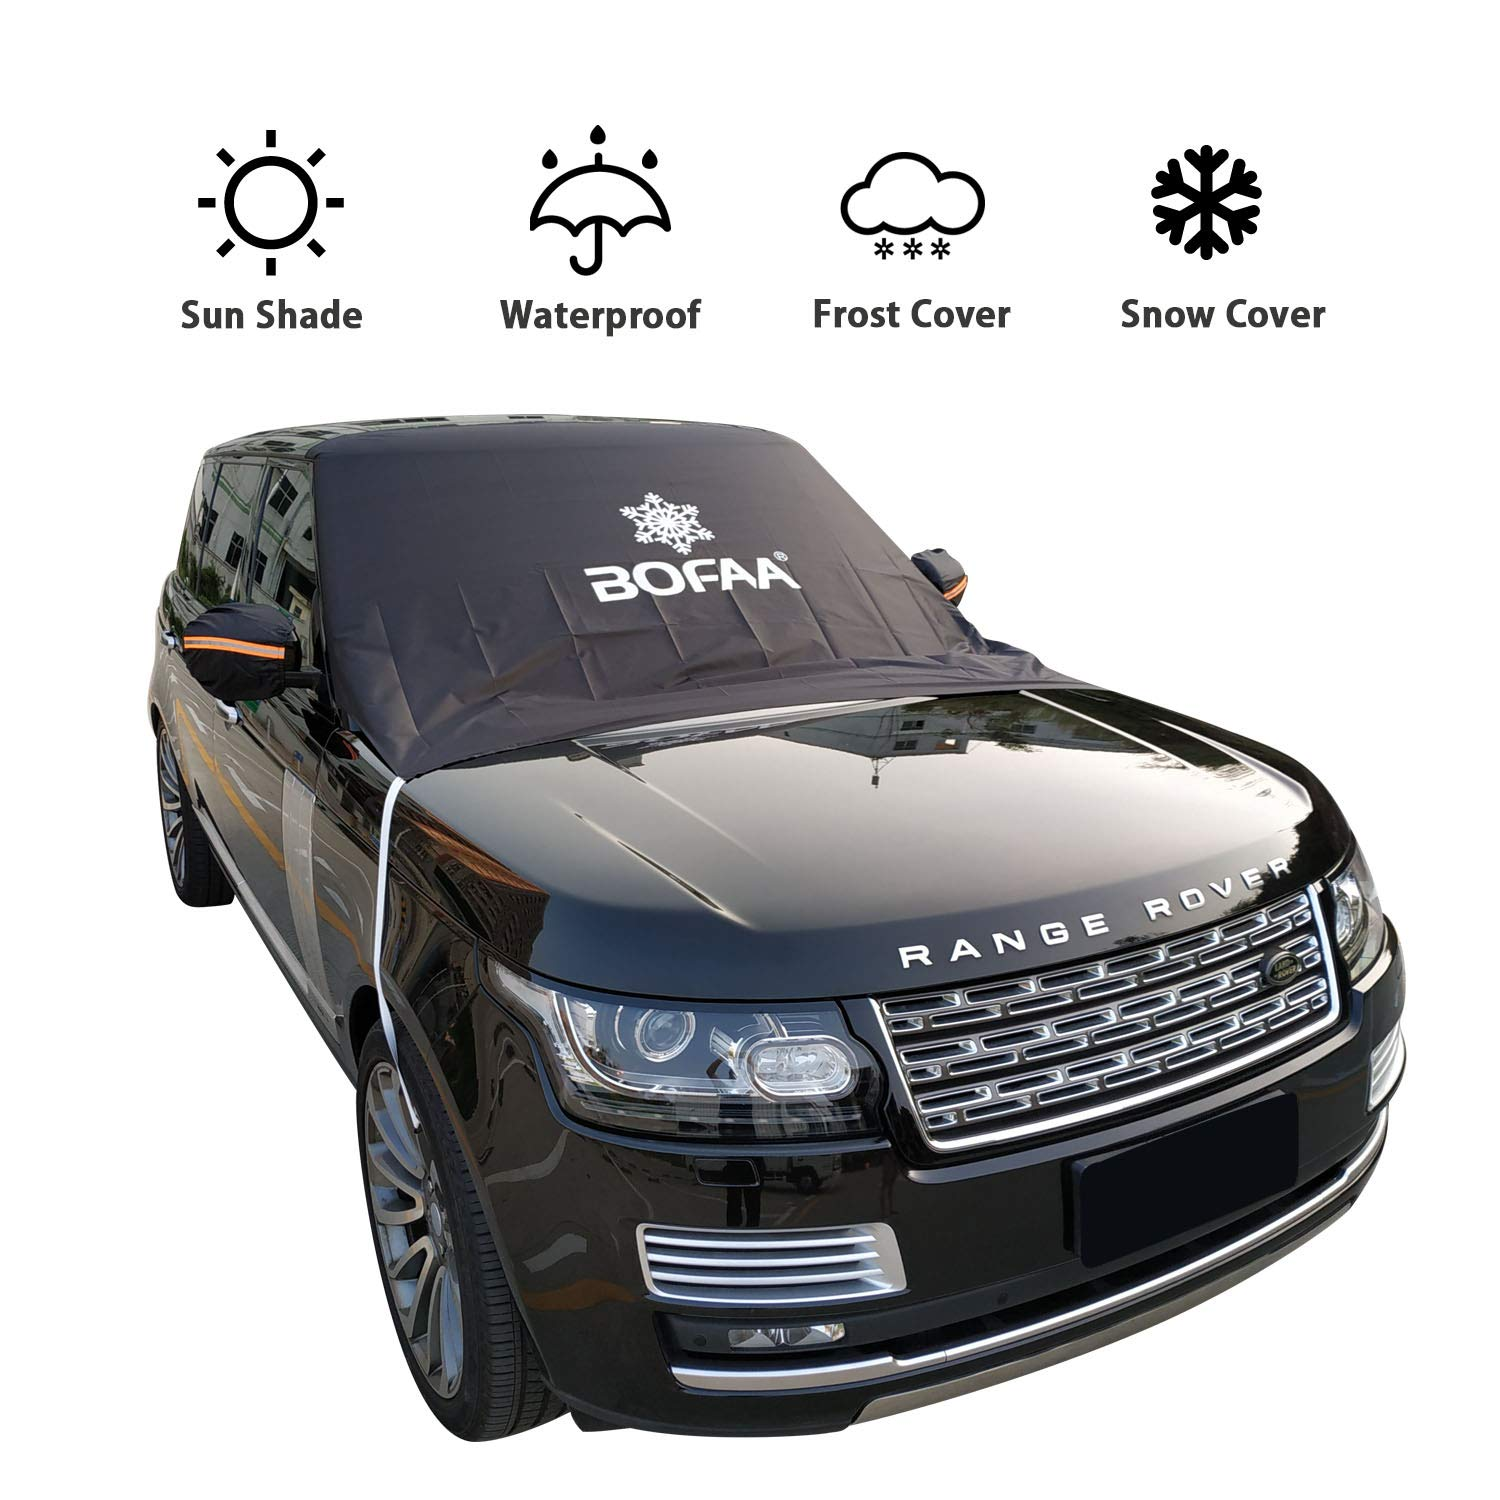 BOFAA Car Windshield Snow Cover (Non-Magnetic), Windshield Cover with Mirror Covers,Blocking Snow, Fallen Leaves, UV Sun Rays,Elastic Hooks Design Will Not Scratch Paint (L - 96 x 59 inches) Windshield Cover with Mirror Covers, Blocking Snow